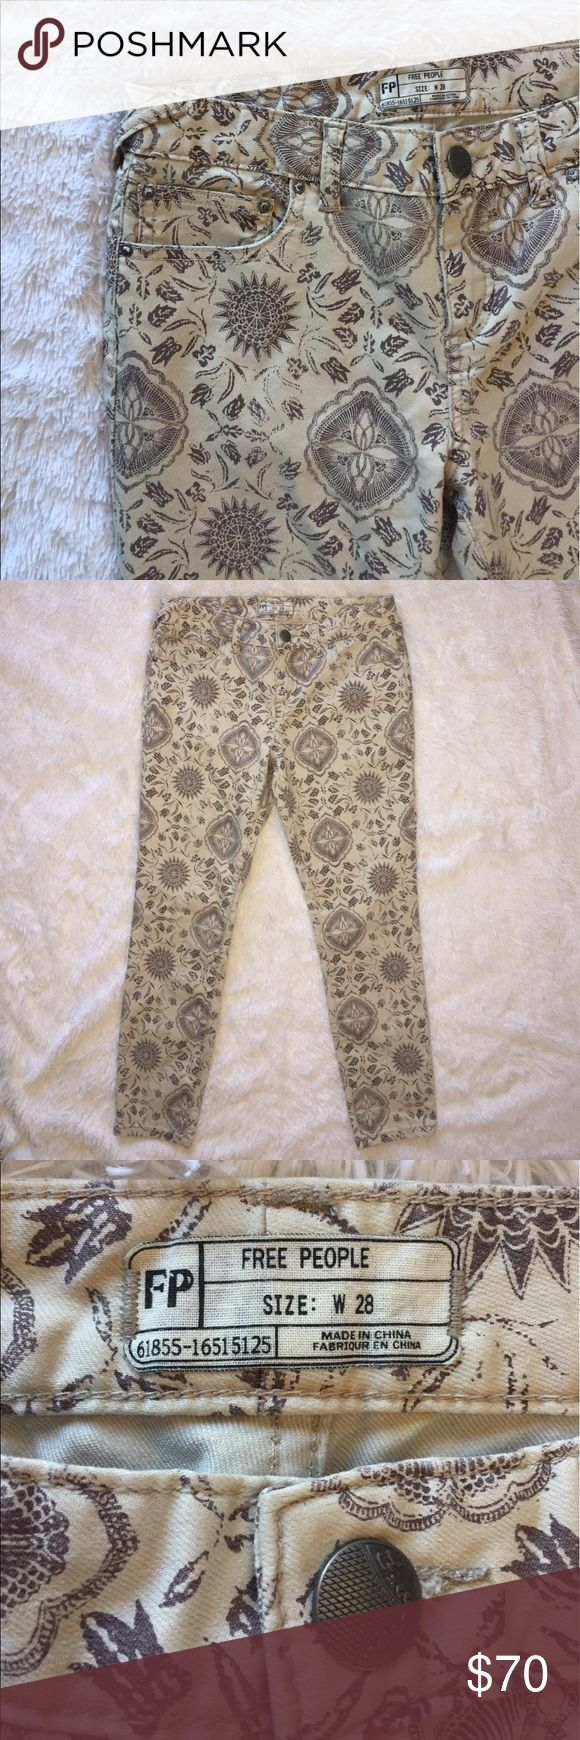 """Free People patterned jeans Free People patterned jeans. Super unique and cool! Length approx 34.5"""". Five working pockets. In mint condition! Never worn, too big for me! Belt hoops. Beige color with brown pattern/design throughout. Please feel free to ask any questions if you're interested in these! :) Free People Jeans"""